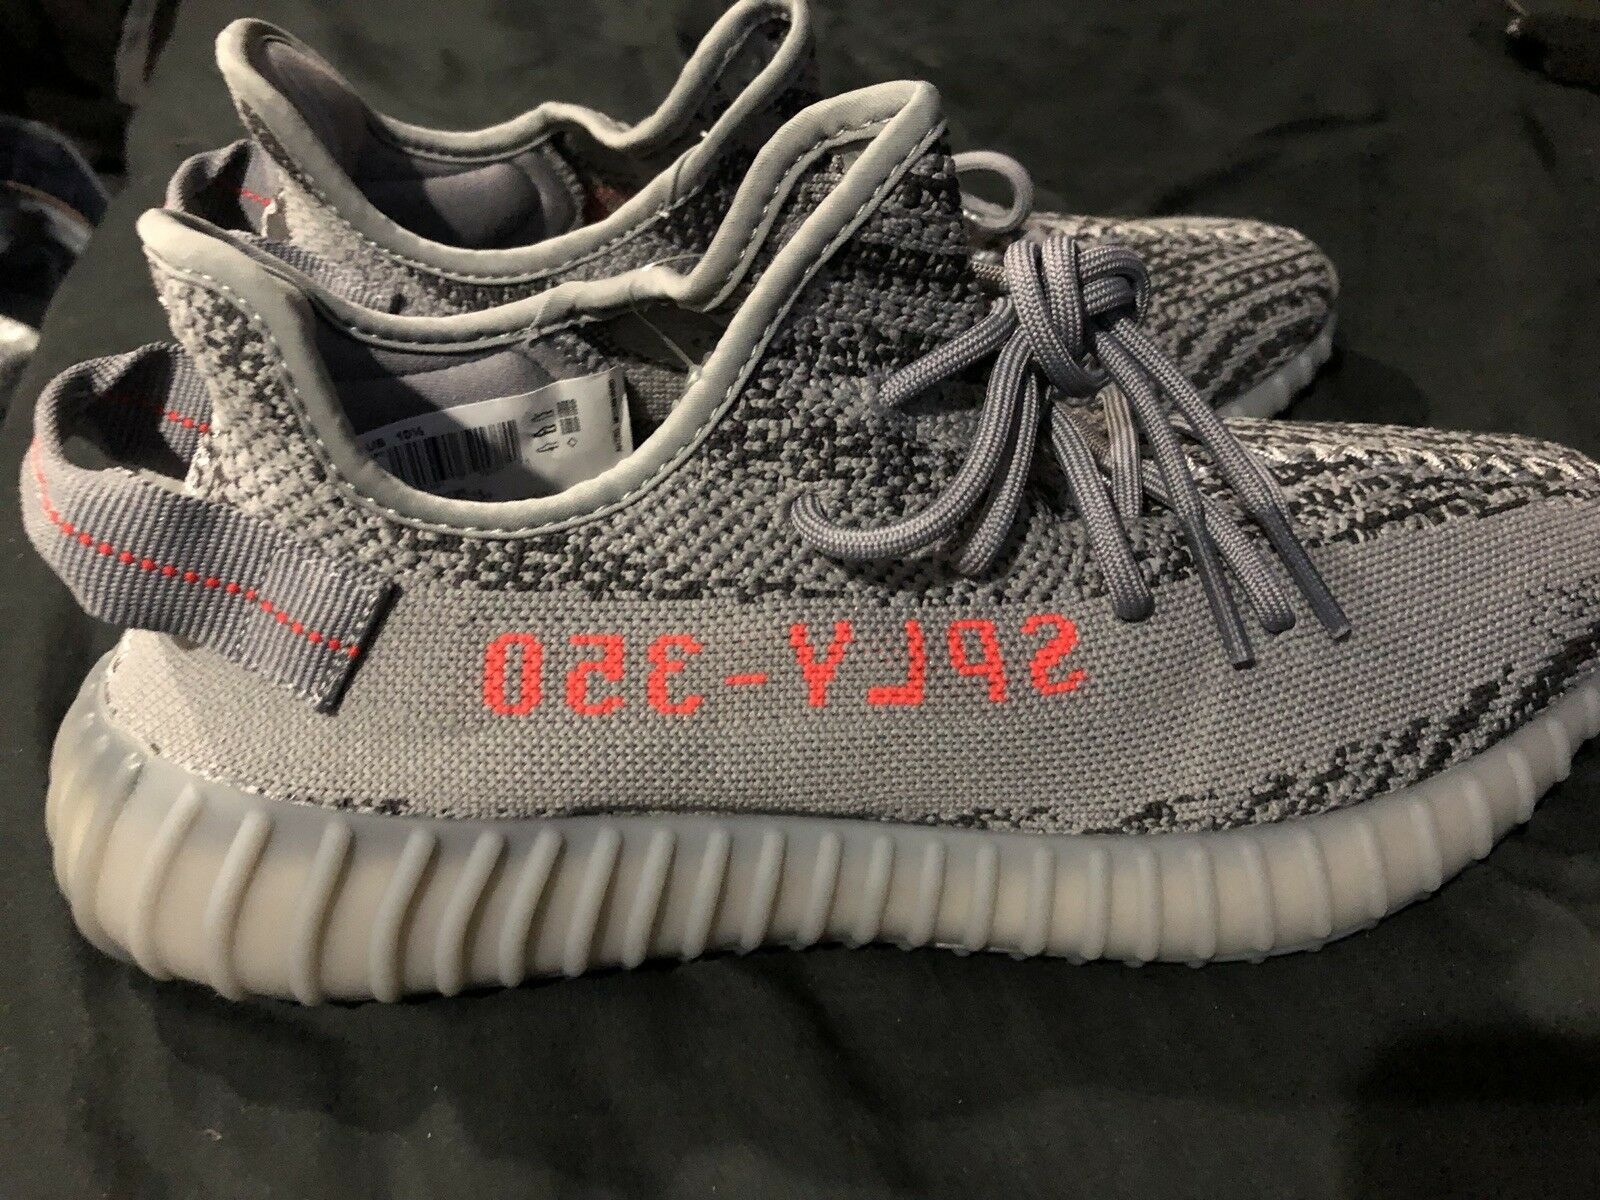 7f07e08b4 Yeezy Boost 350 V2 Beluga Size 10.5 for sale online